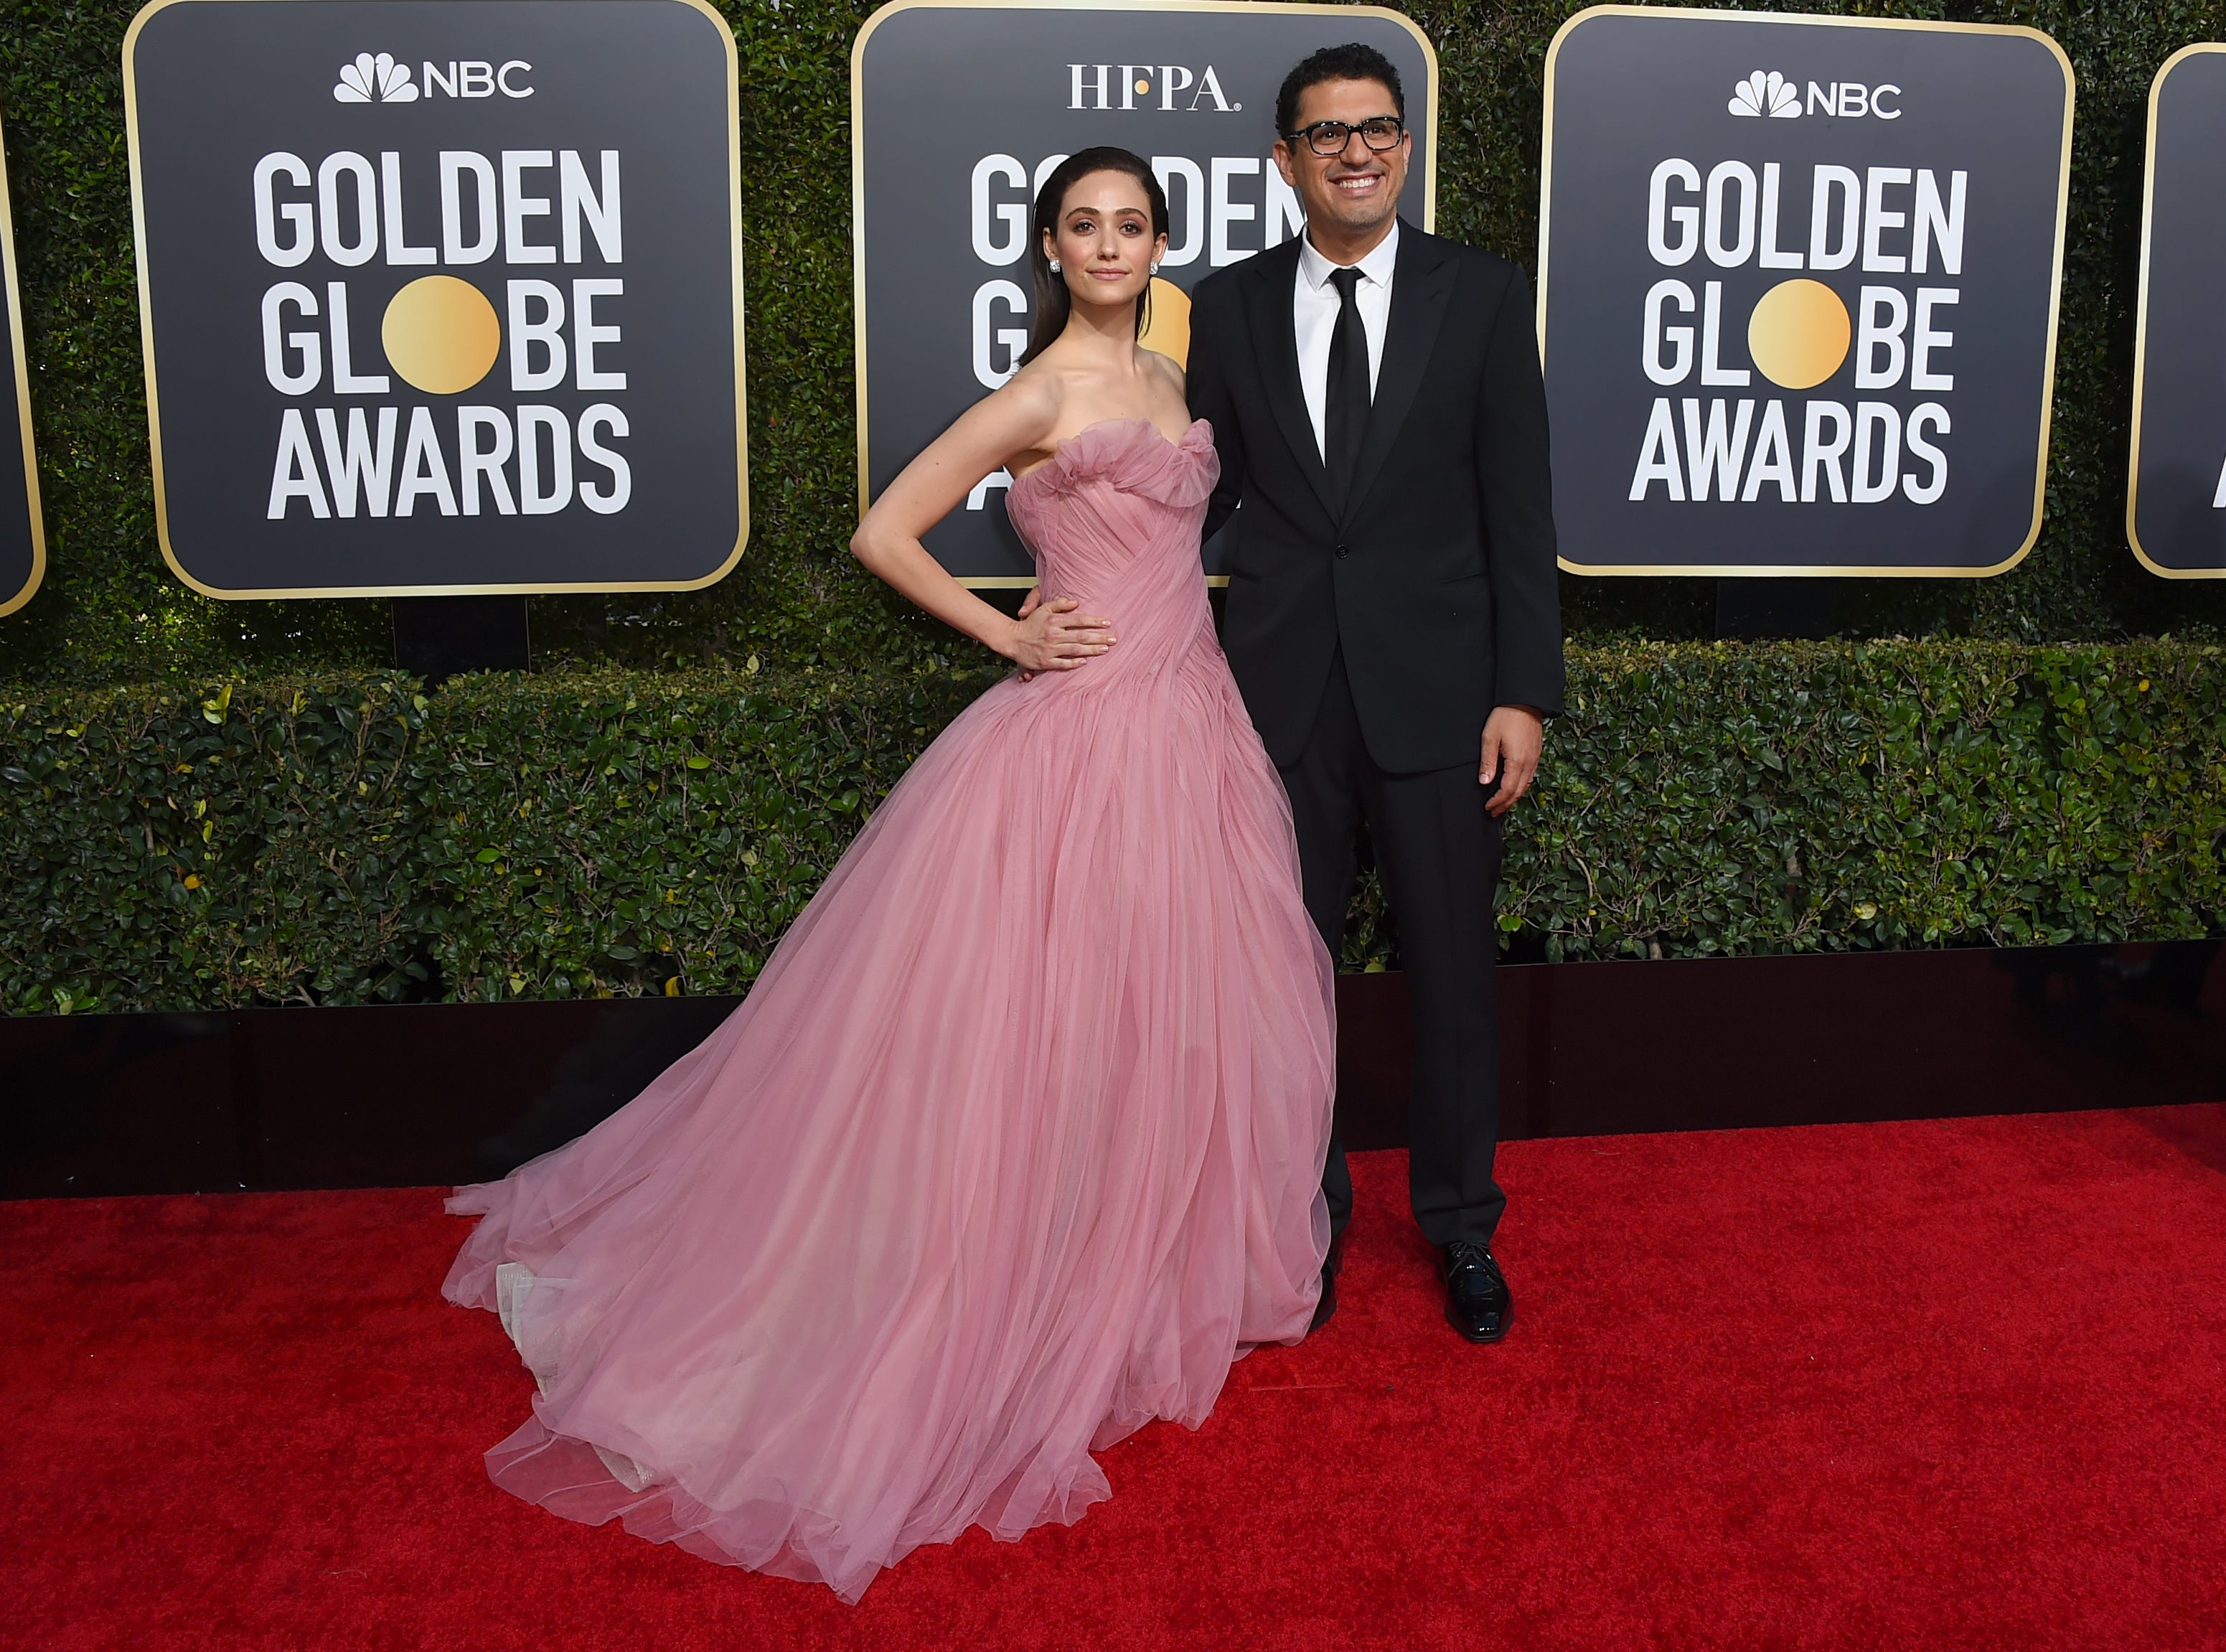 Emmy Rossum, Sam Esmail arrives at the 76th annual Golden Globe Awards at the Beverly Hilton Hotel.